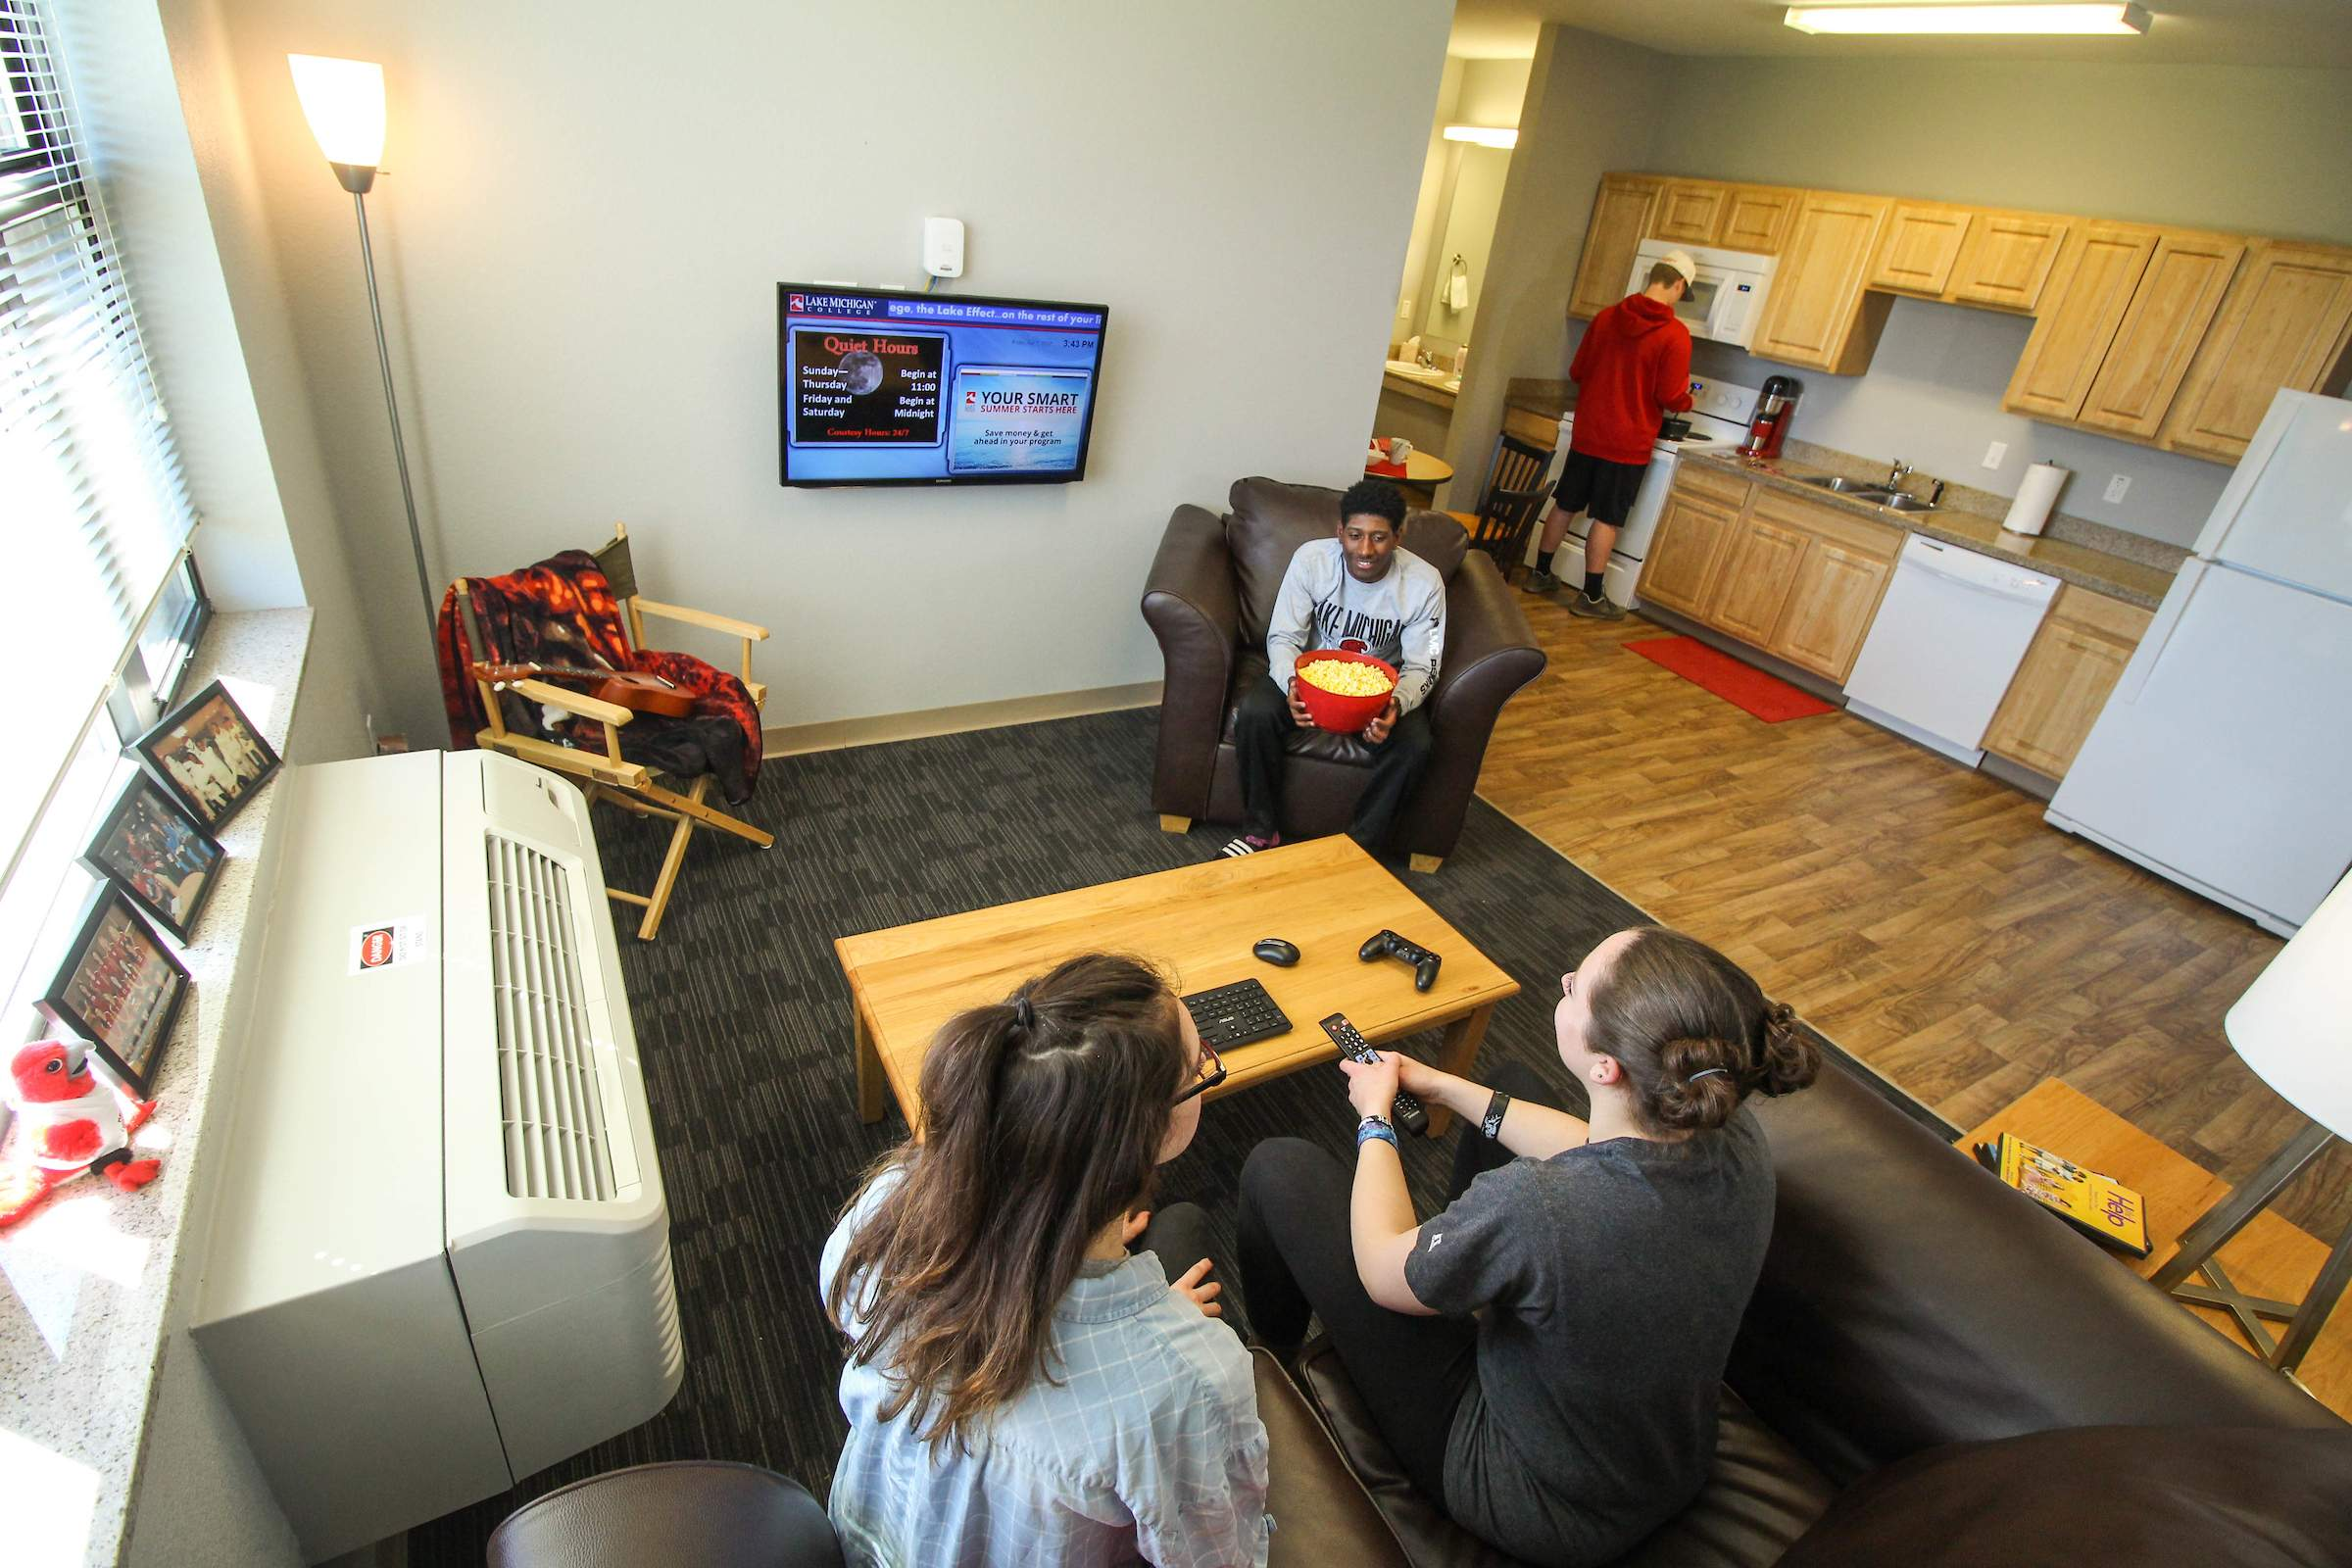 Students in shared living spaces in a dorm suite